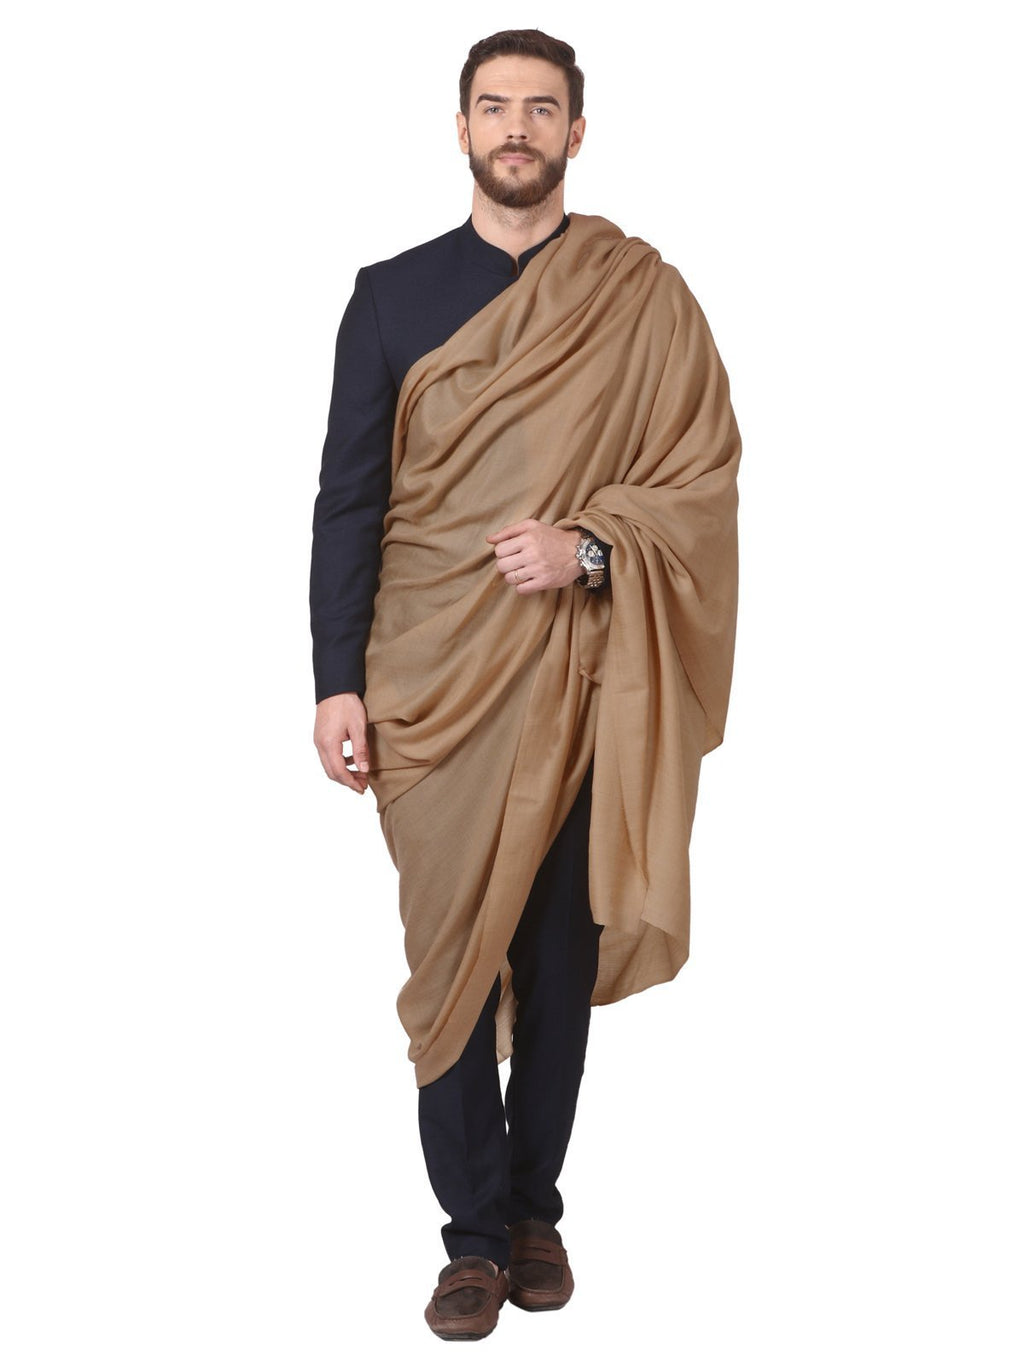 Pashtush Store Shawl Pashtush Mens Super Fine Ring Shawl, full size 54x108 inches - Taupe